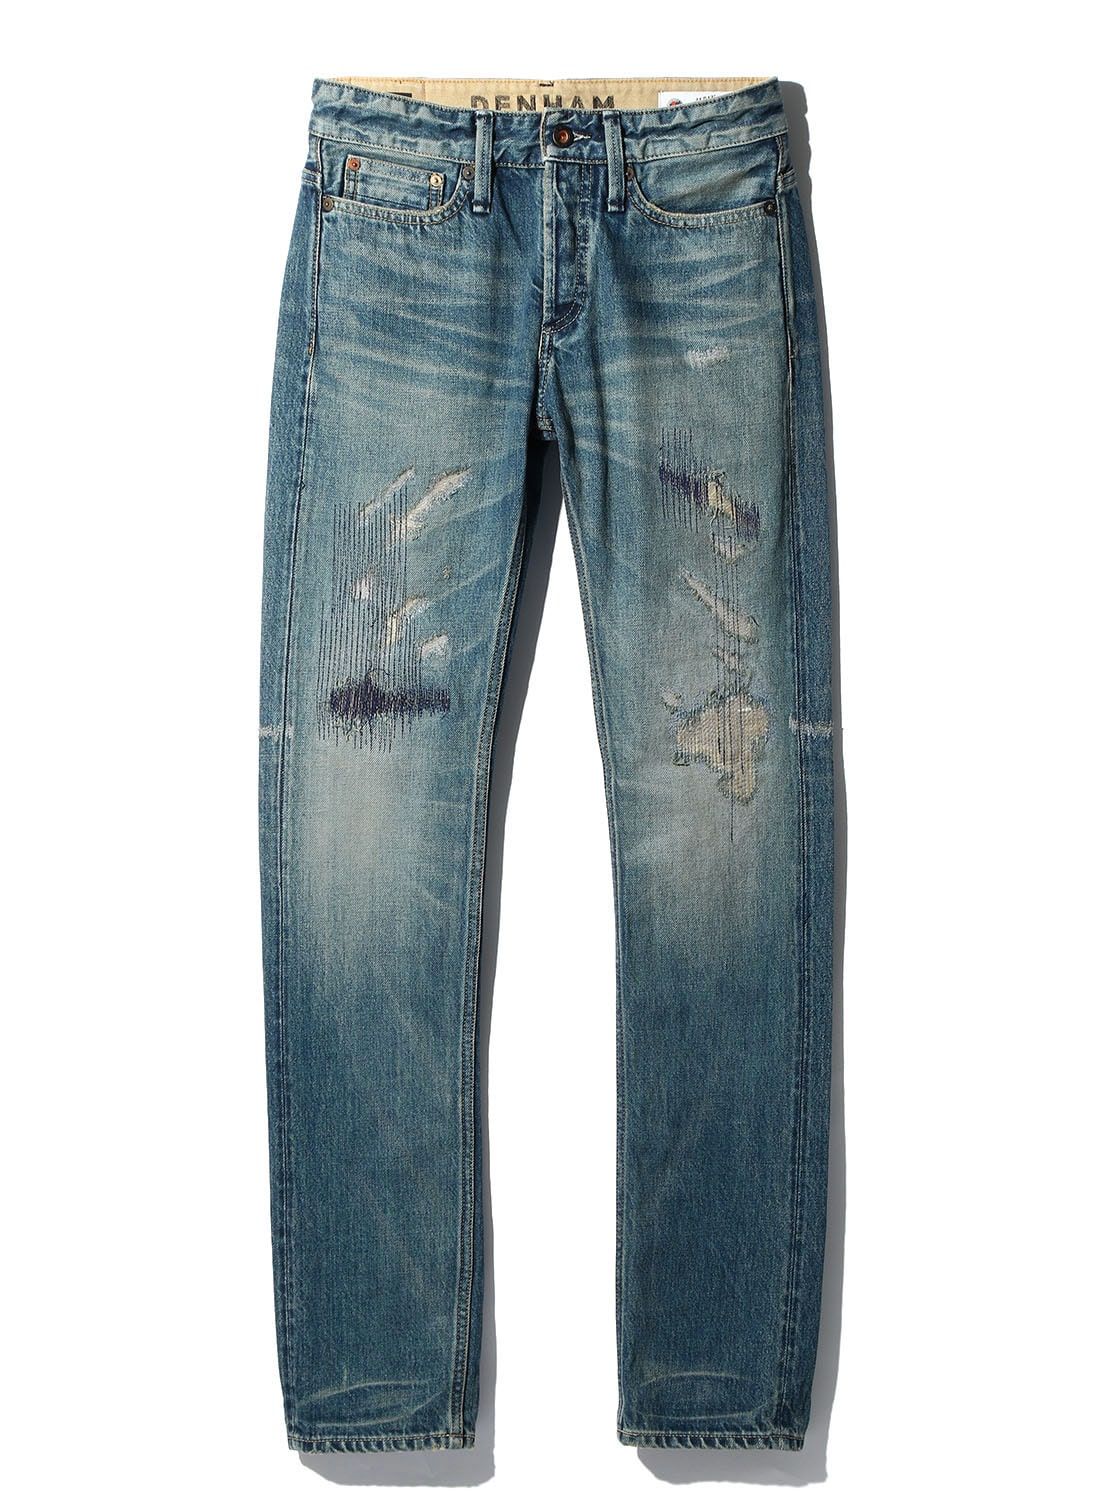 【JAPAN DENIM】 RAZOR MIJFS